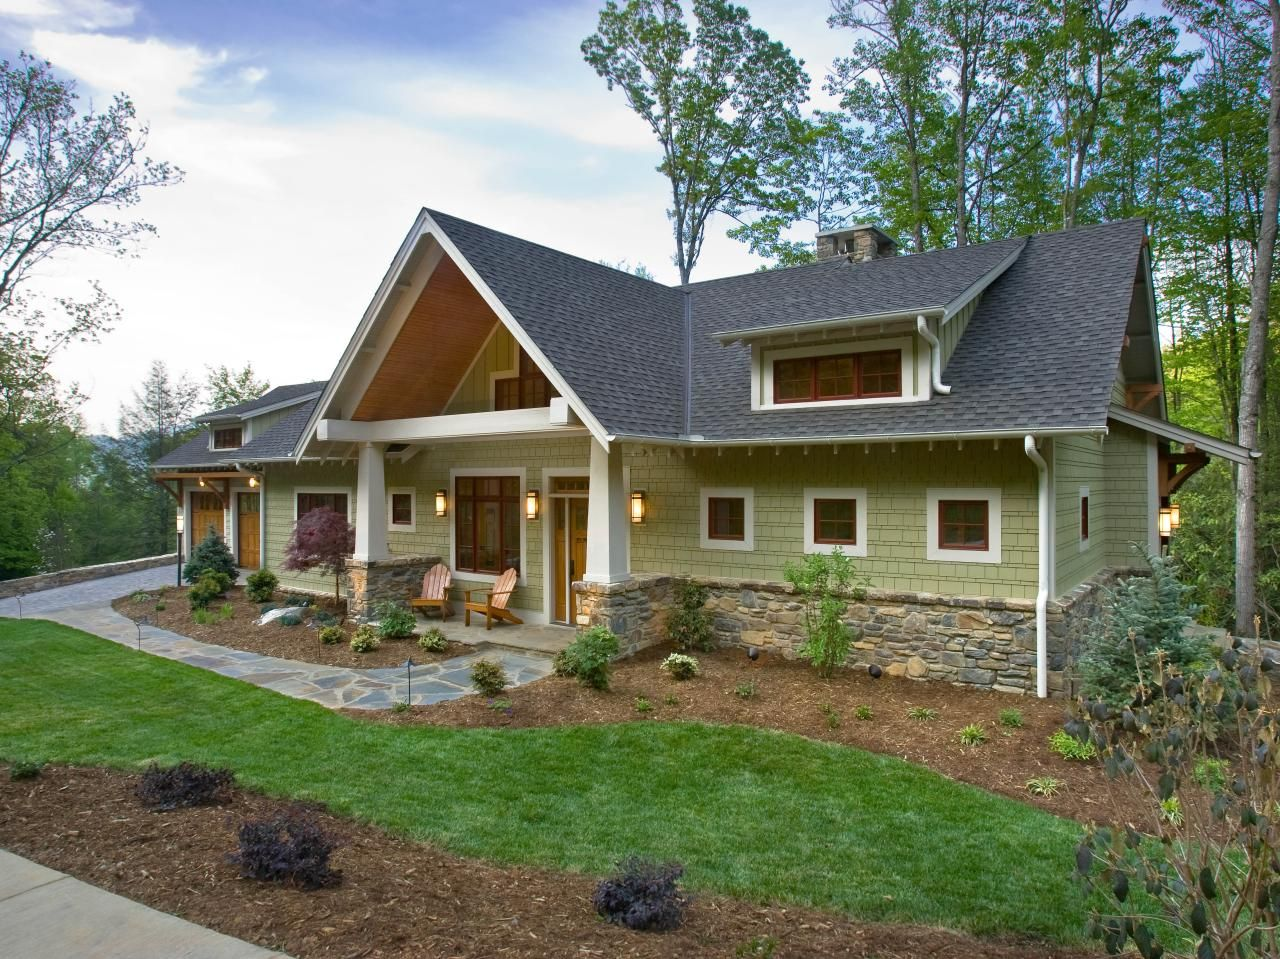 Exterior home colors green - Often Referred To As A Bungalow Style Home Craftsman Designs And Layouts Typically Make